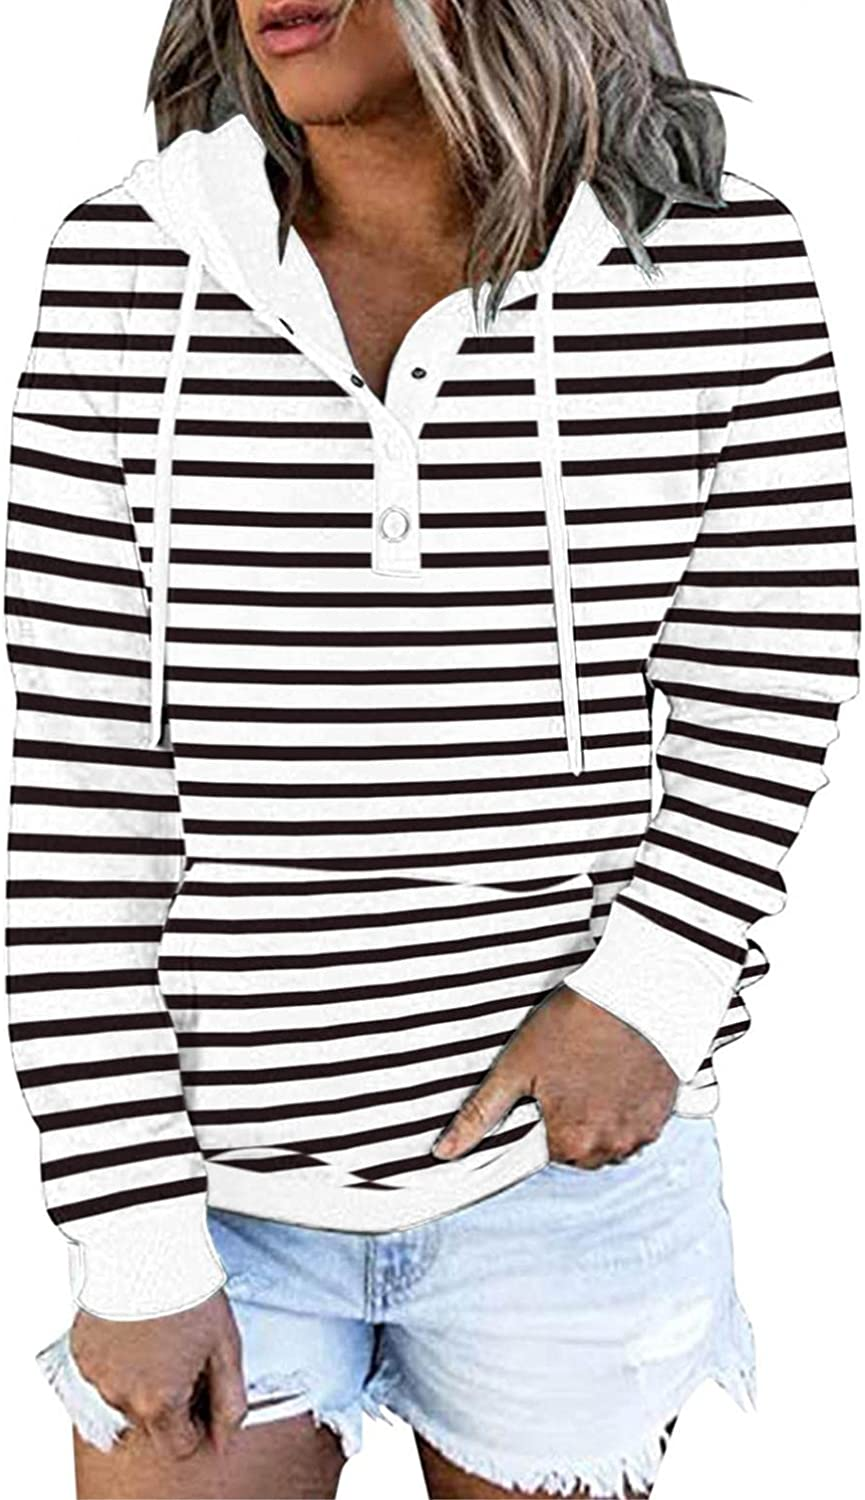 COMVALUE Womens Hoodies,Drawstring Pullover Striped Long Sleeve Button Down V Neck Sweatshirts